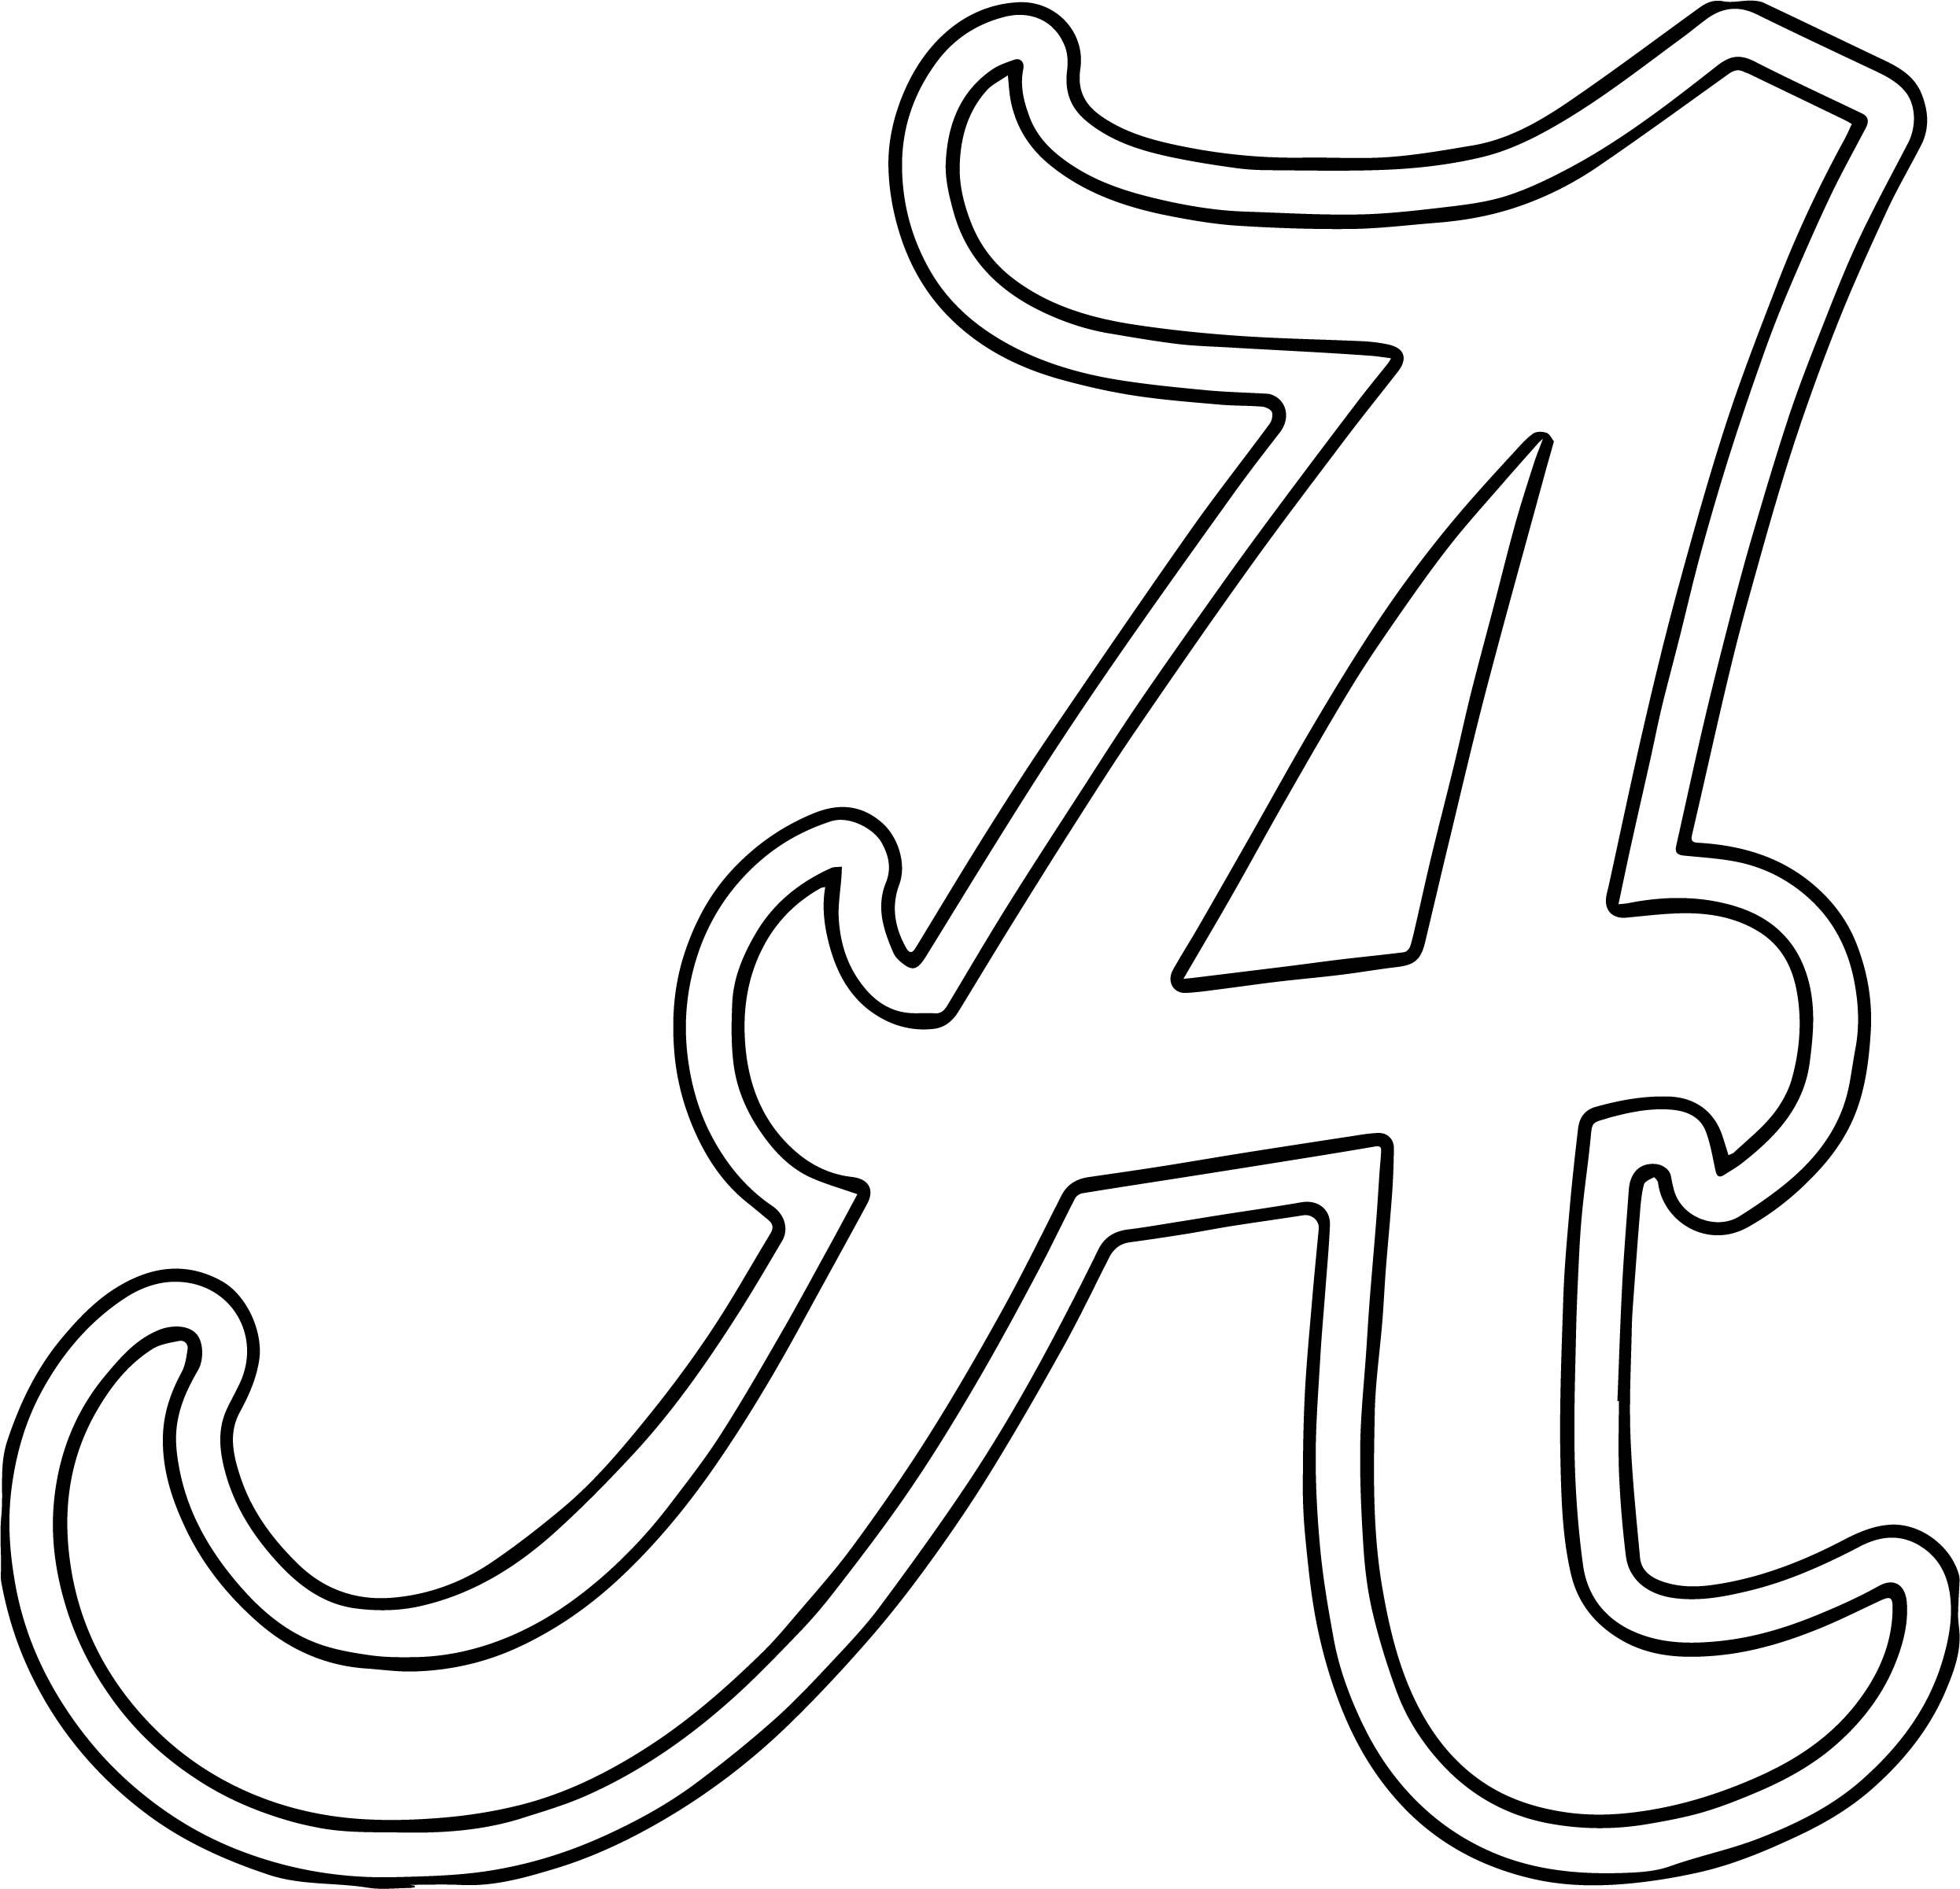 University Of Alabama Coloring Pages